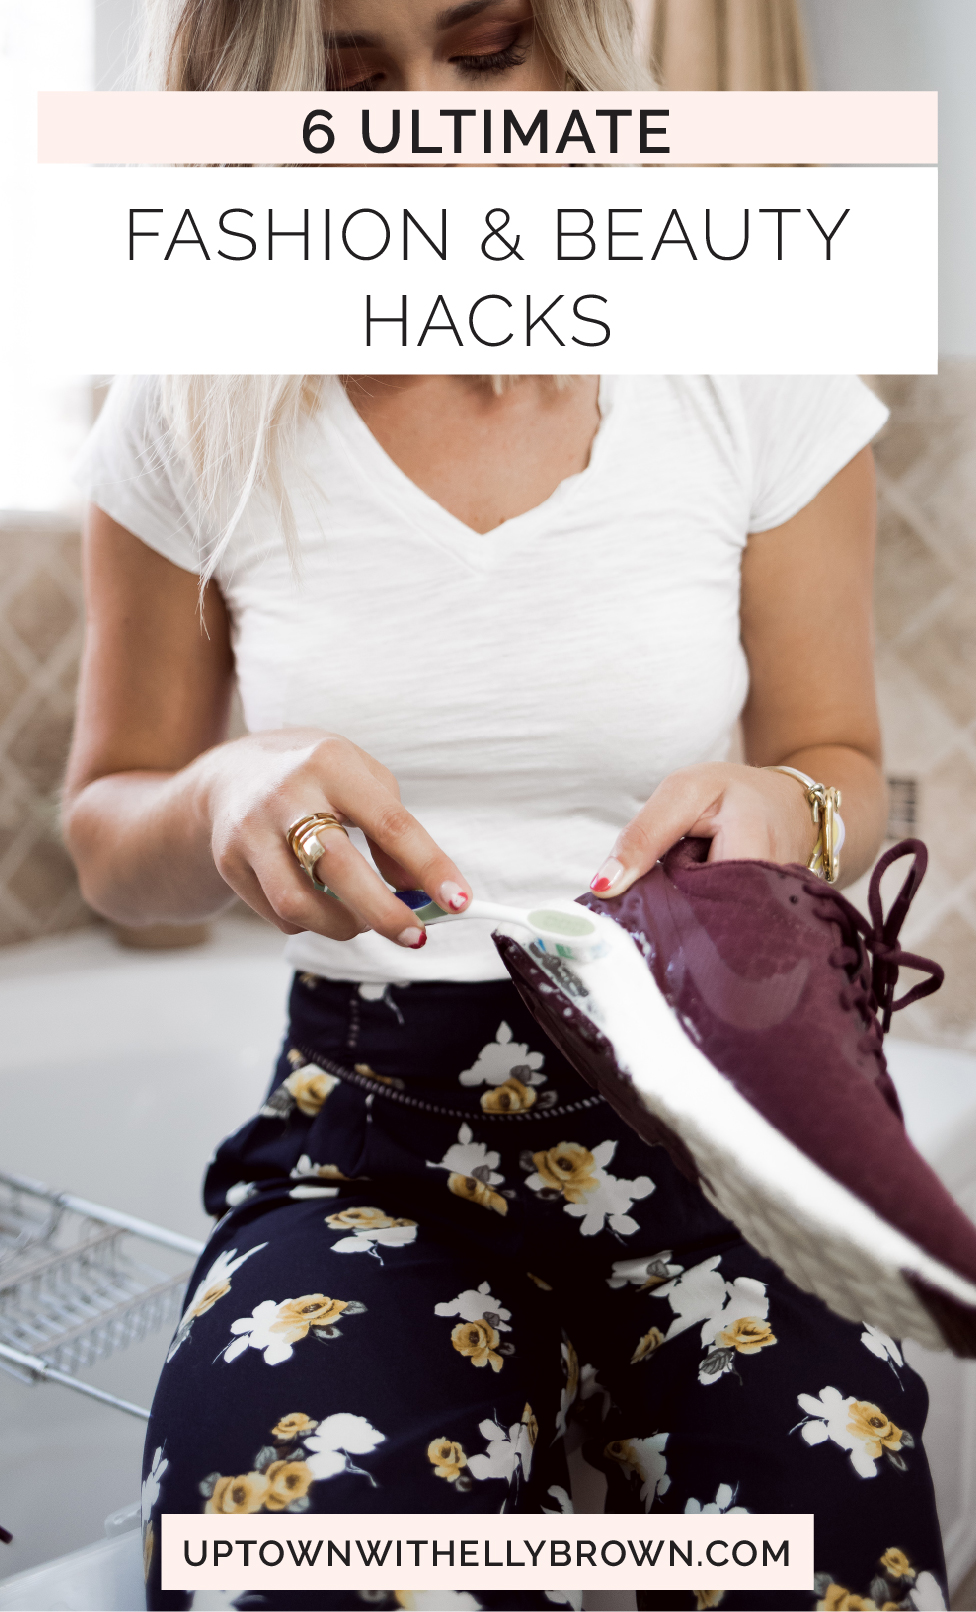 Houston Lifestyle blogger Uptown with Elly Brown shares her tried and true Fashion and Beauty Hacks that every girl should know. Click here for more!